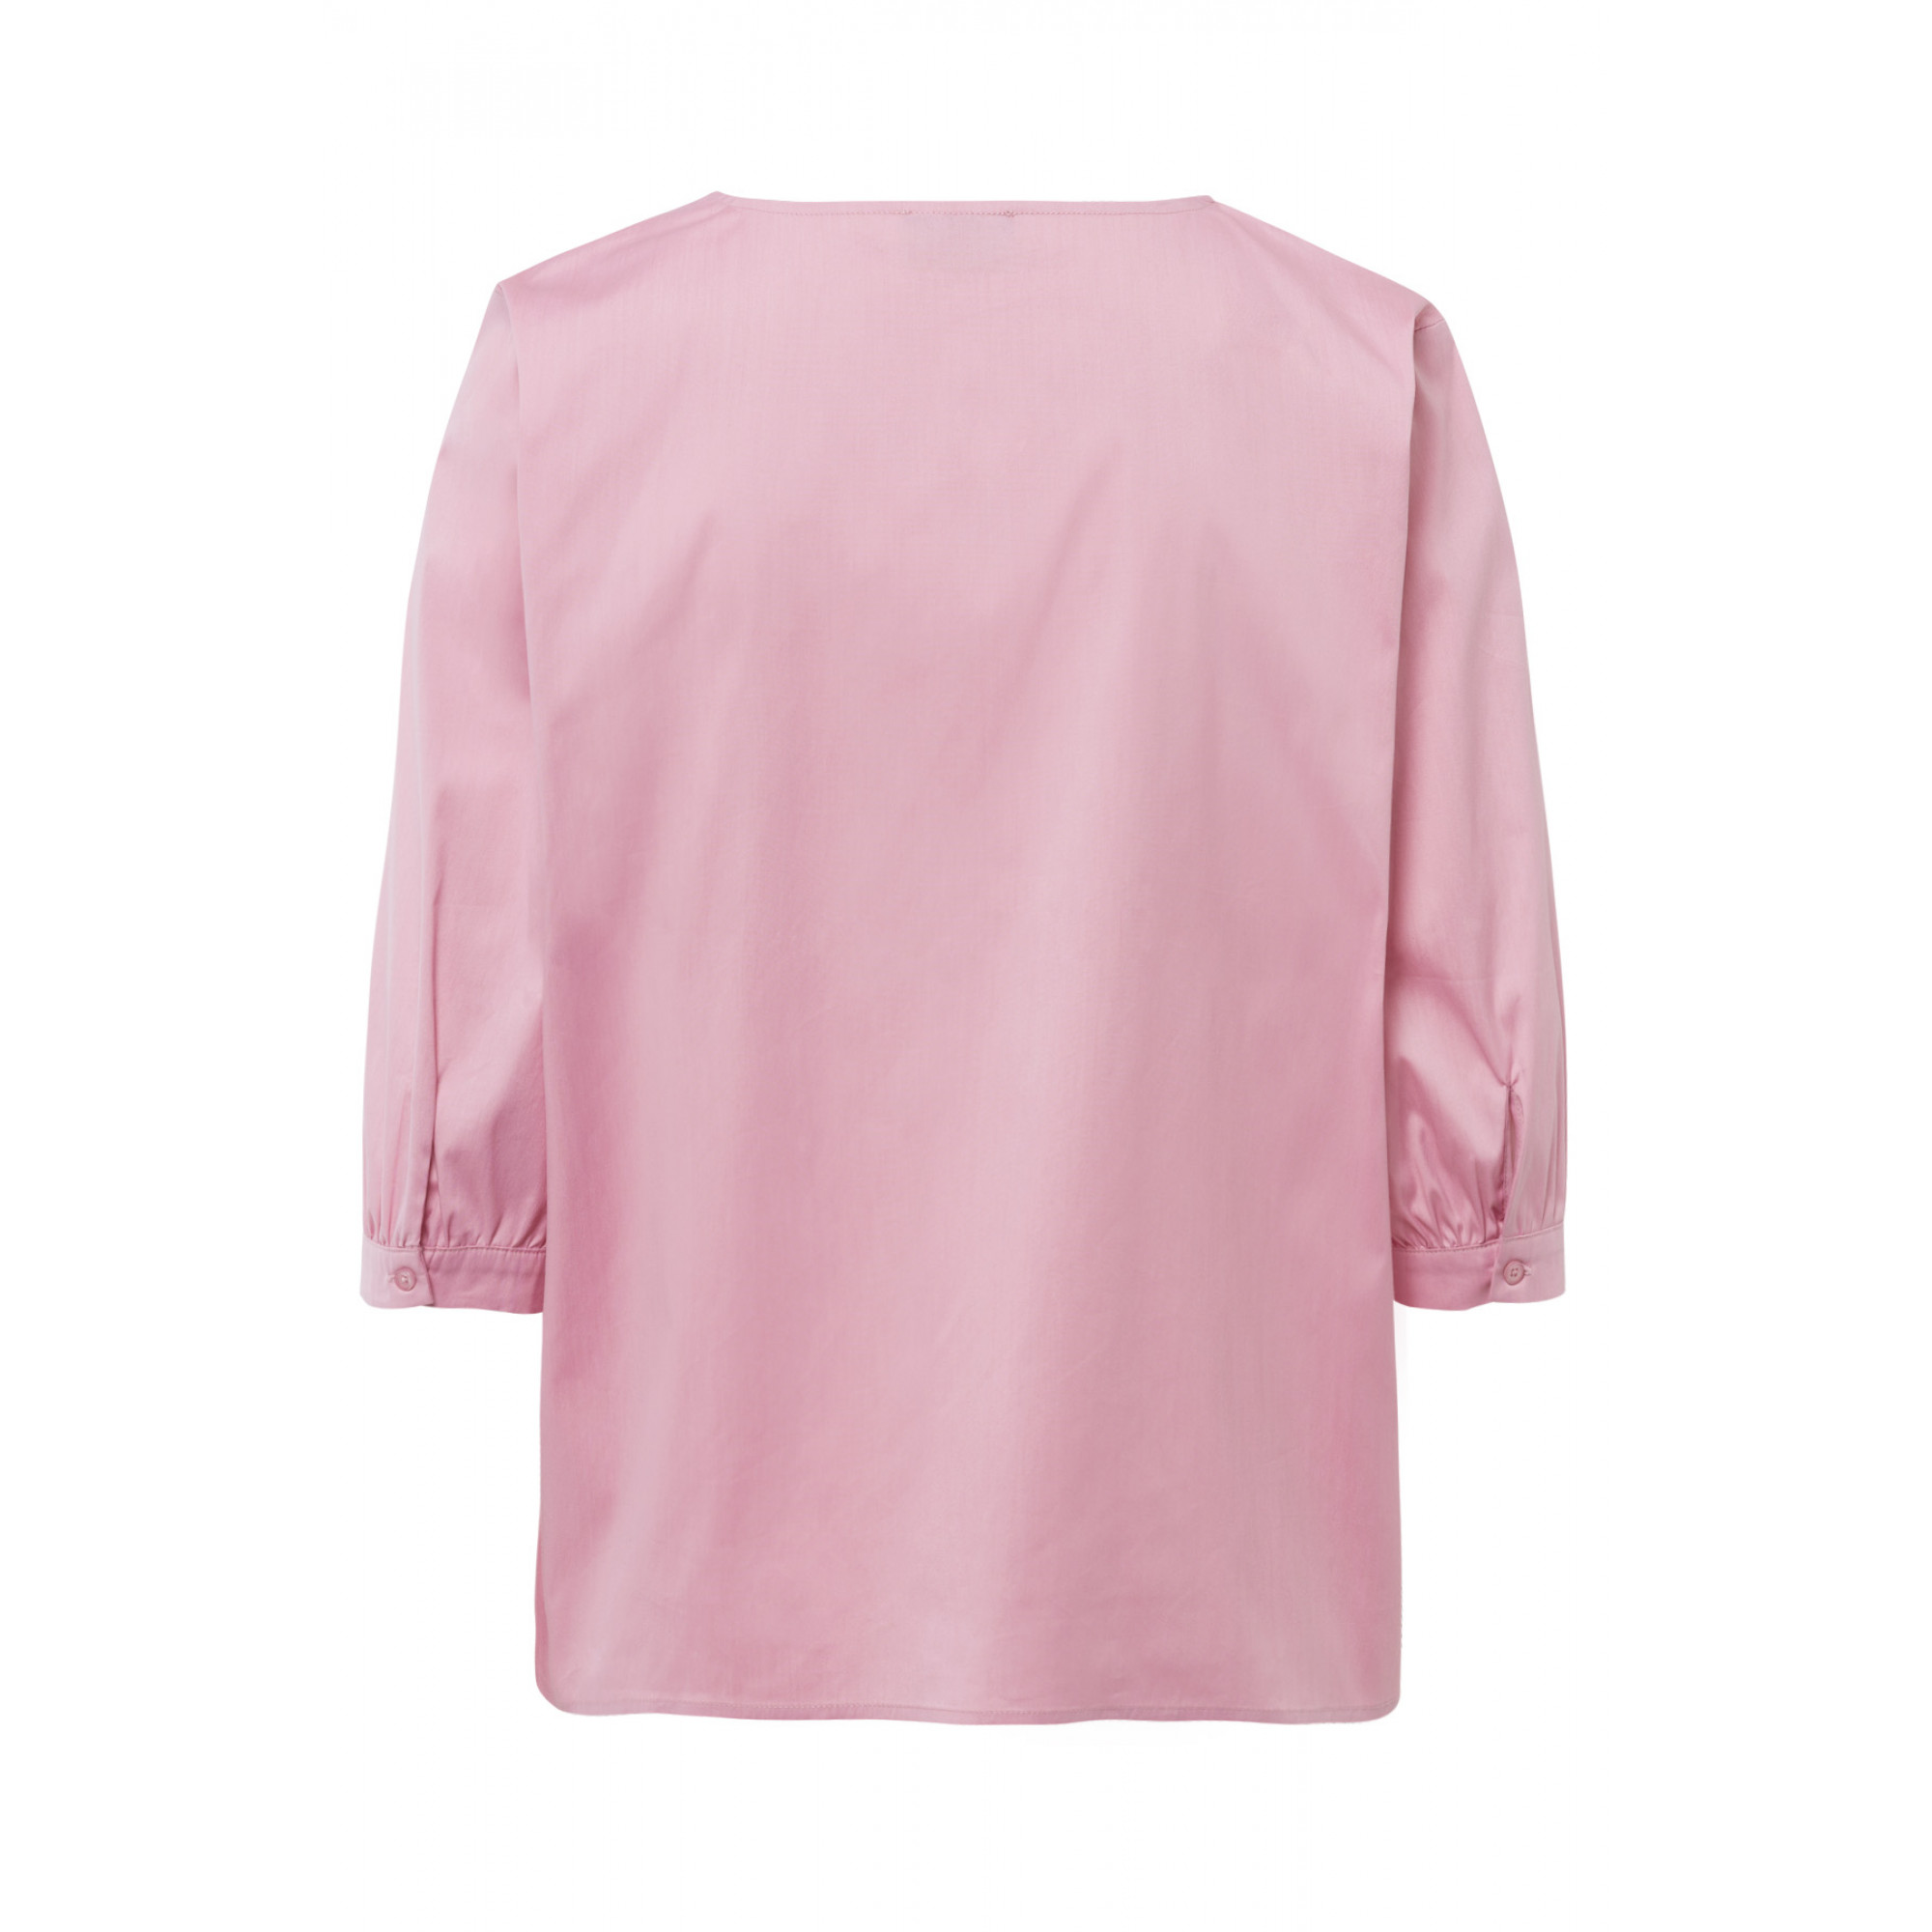 Bluse, milky rose 91032024-0821 2